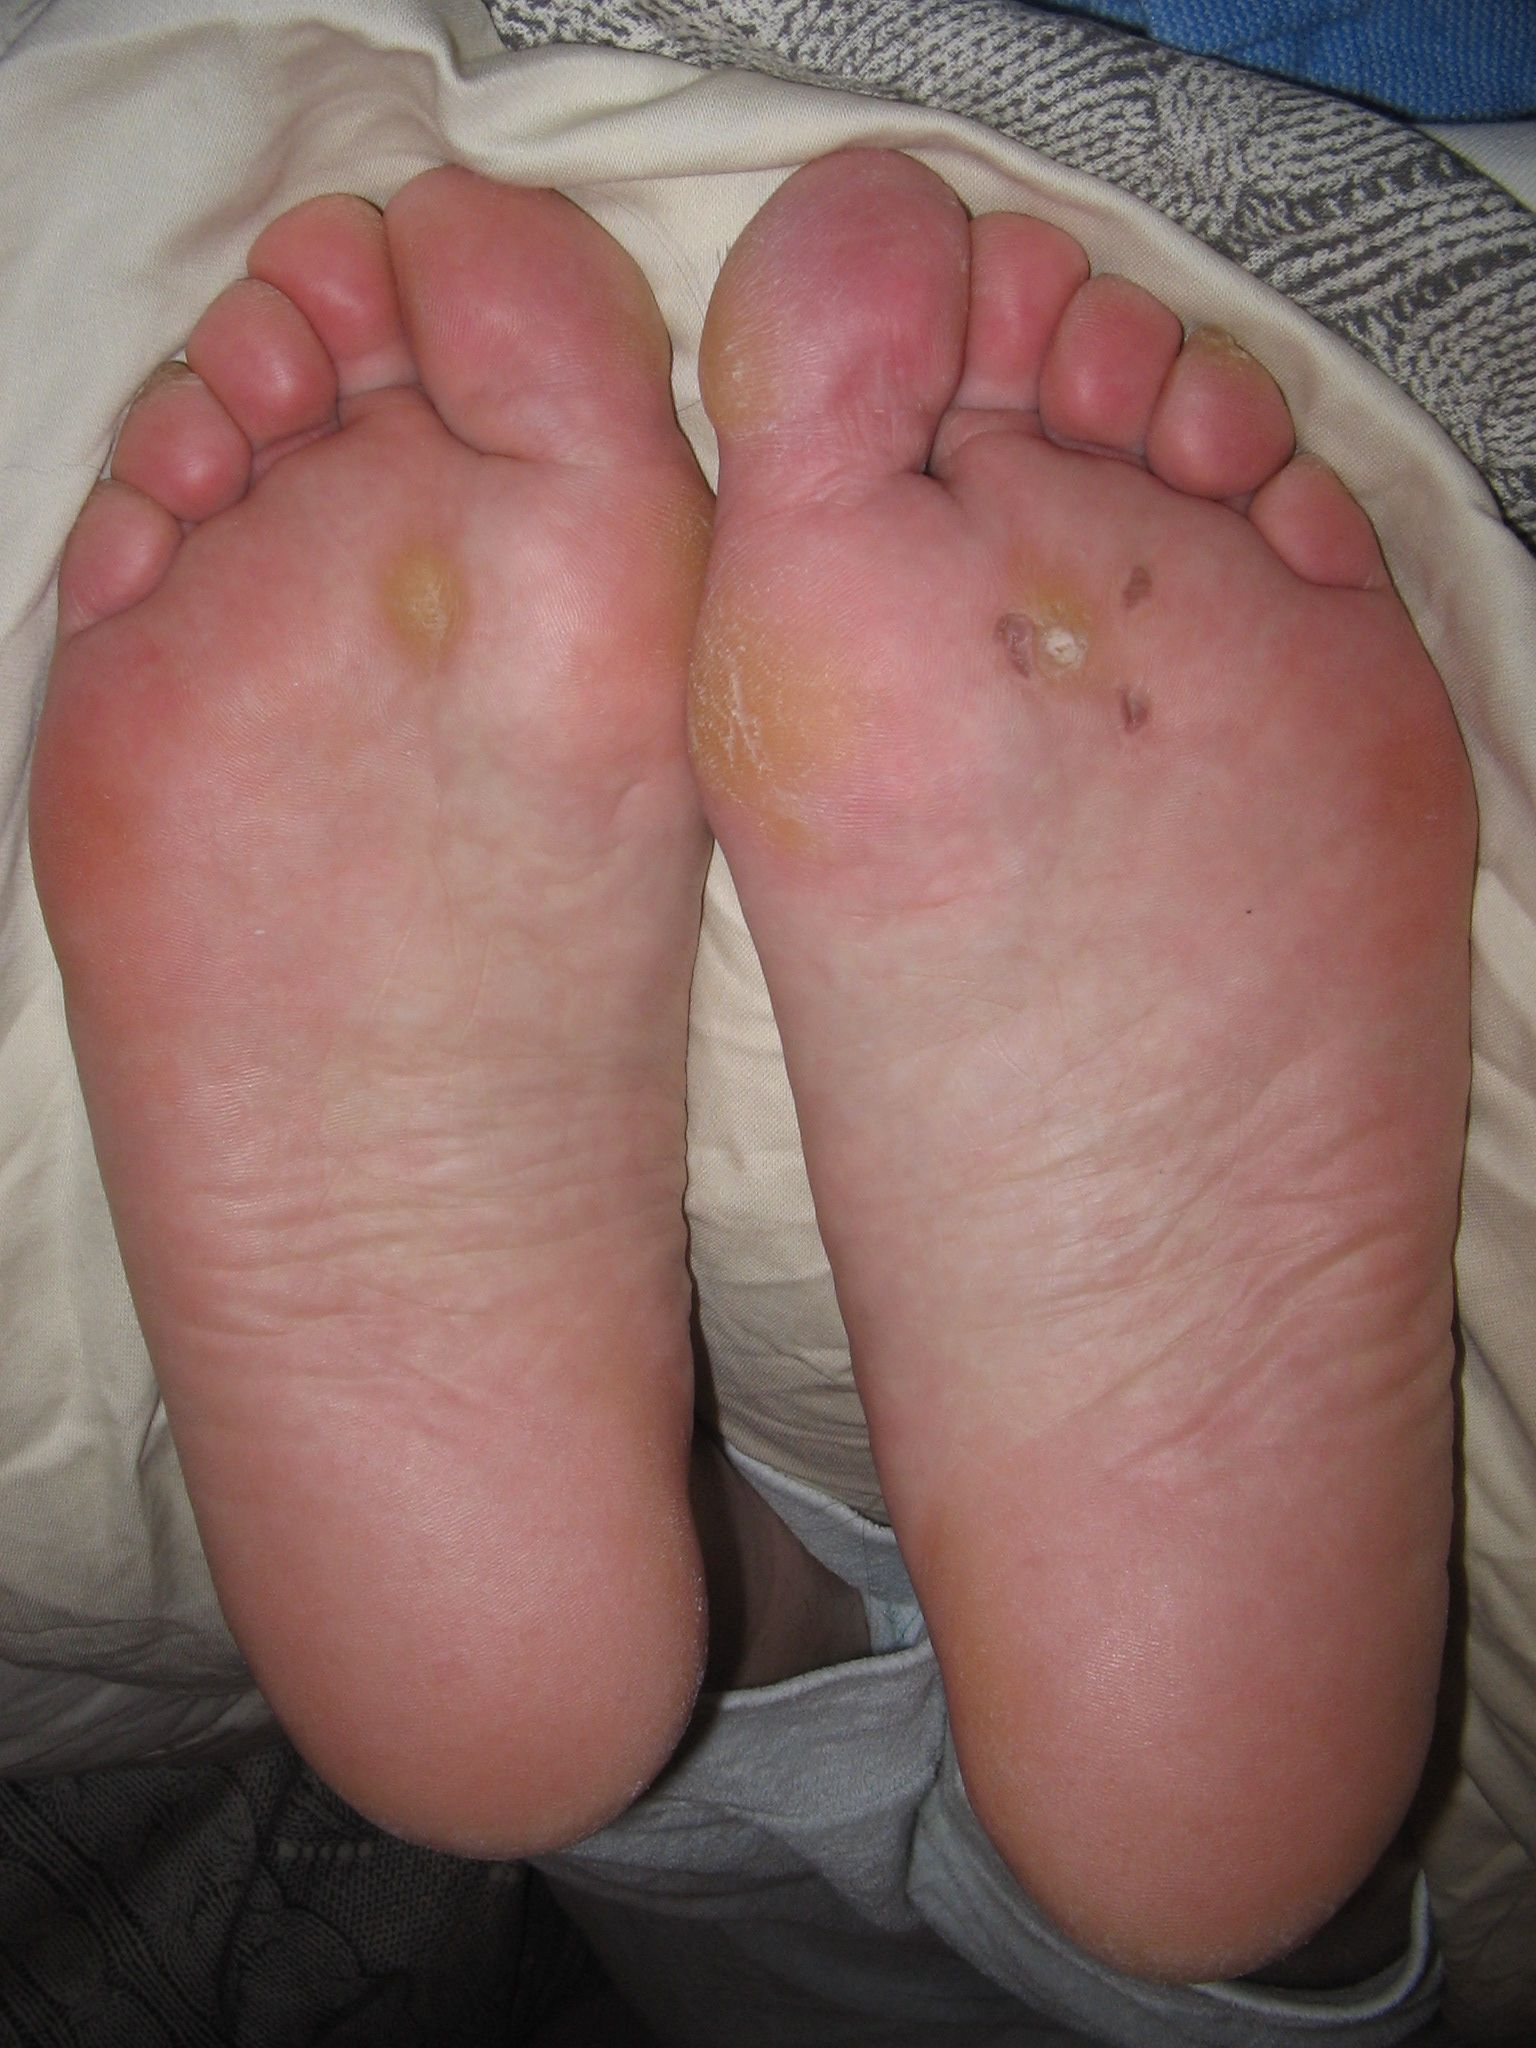 Wart on foot pregnancy. Helminth suffix meaning - Wart on foot and pregnancy